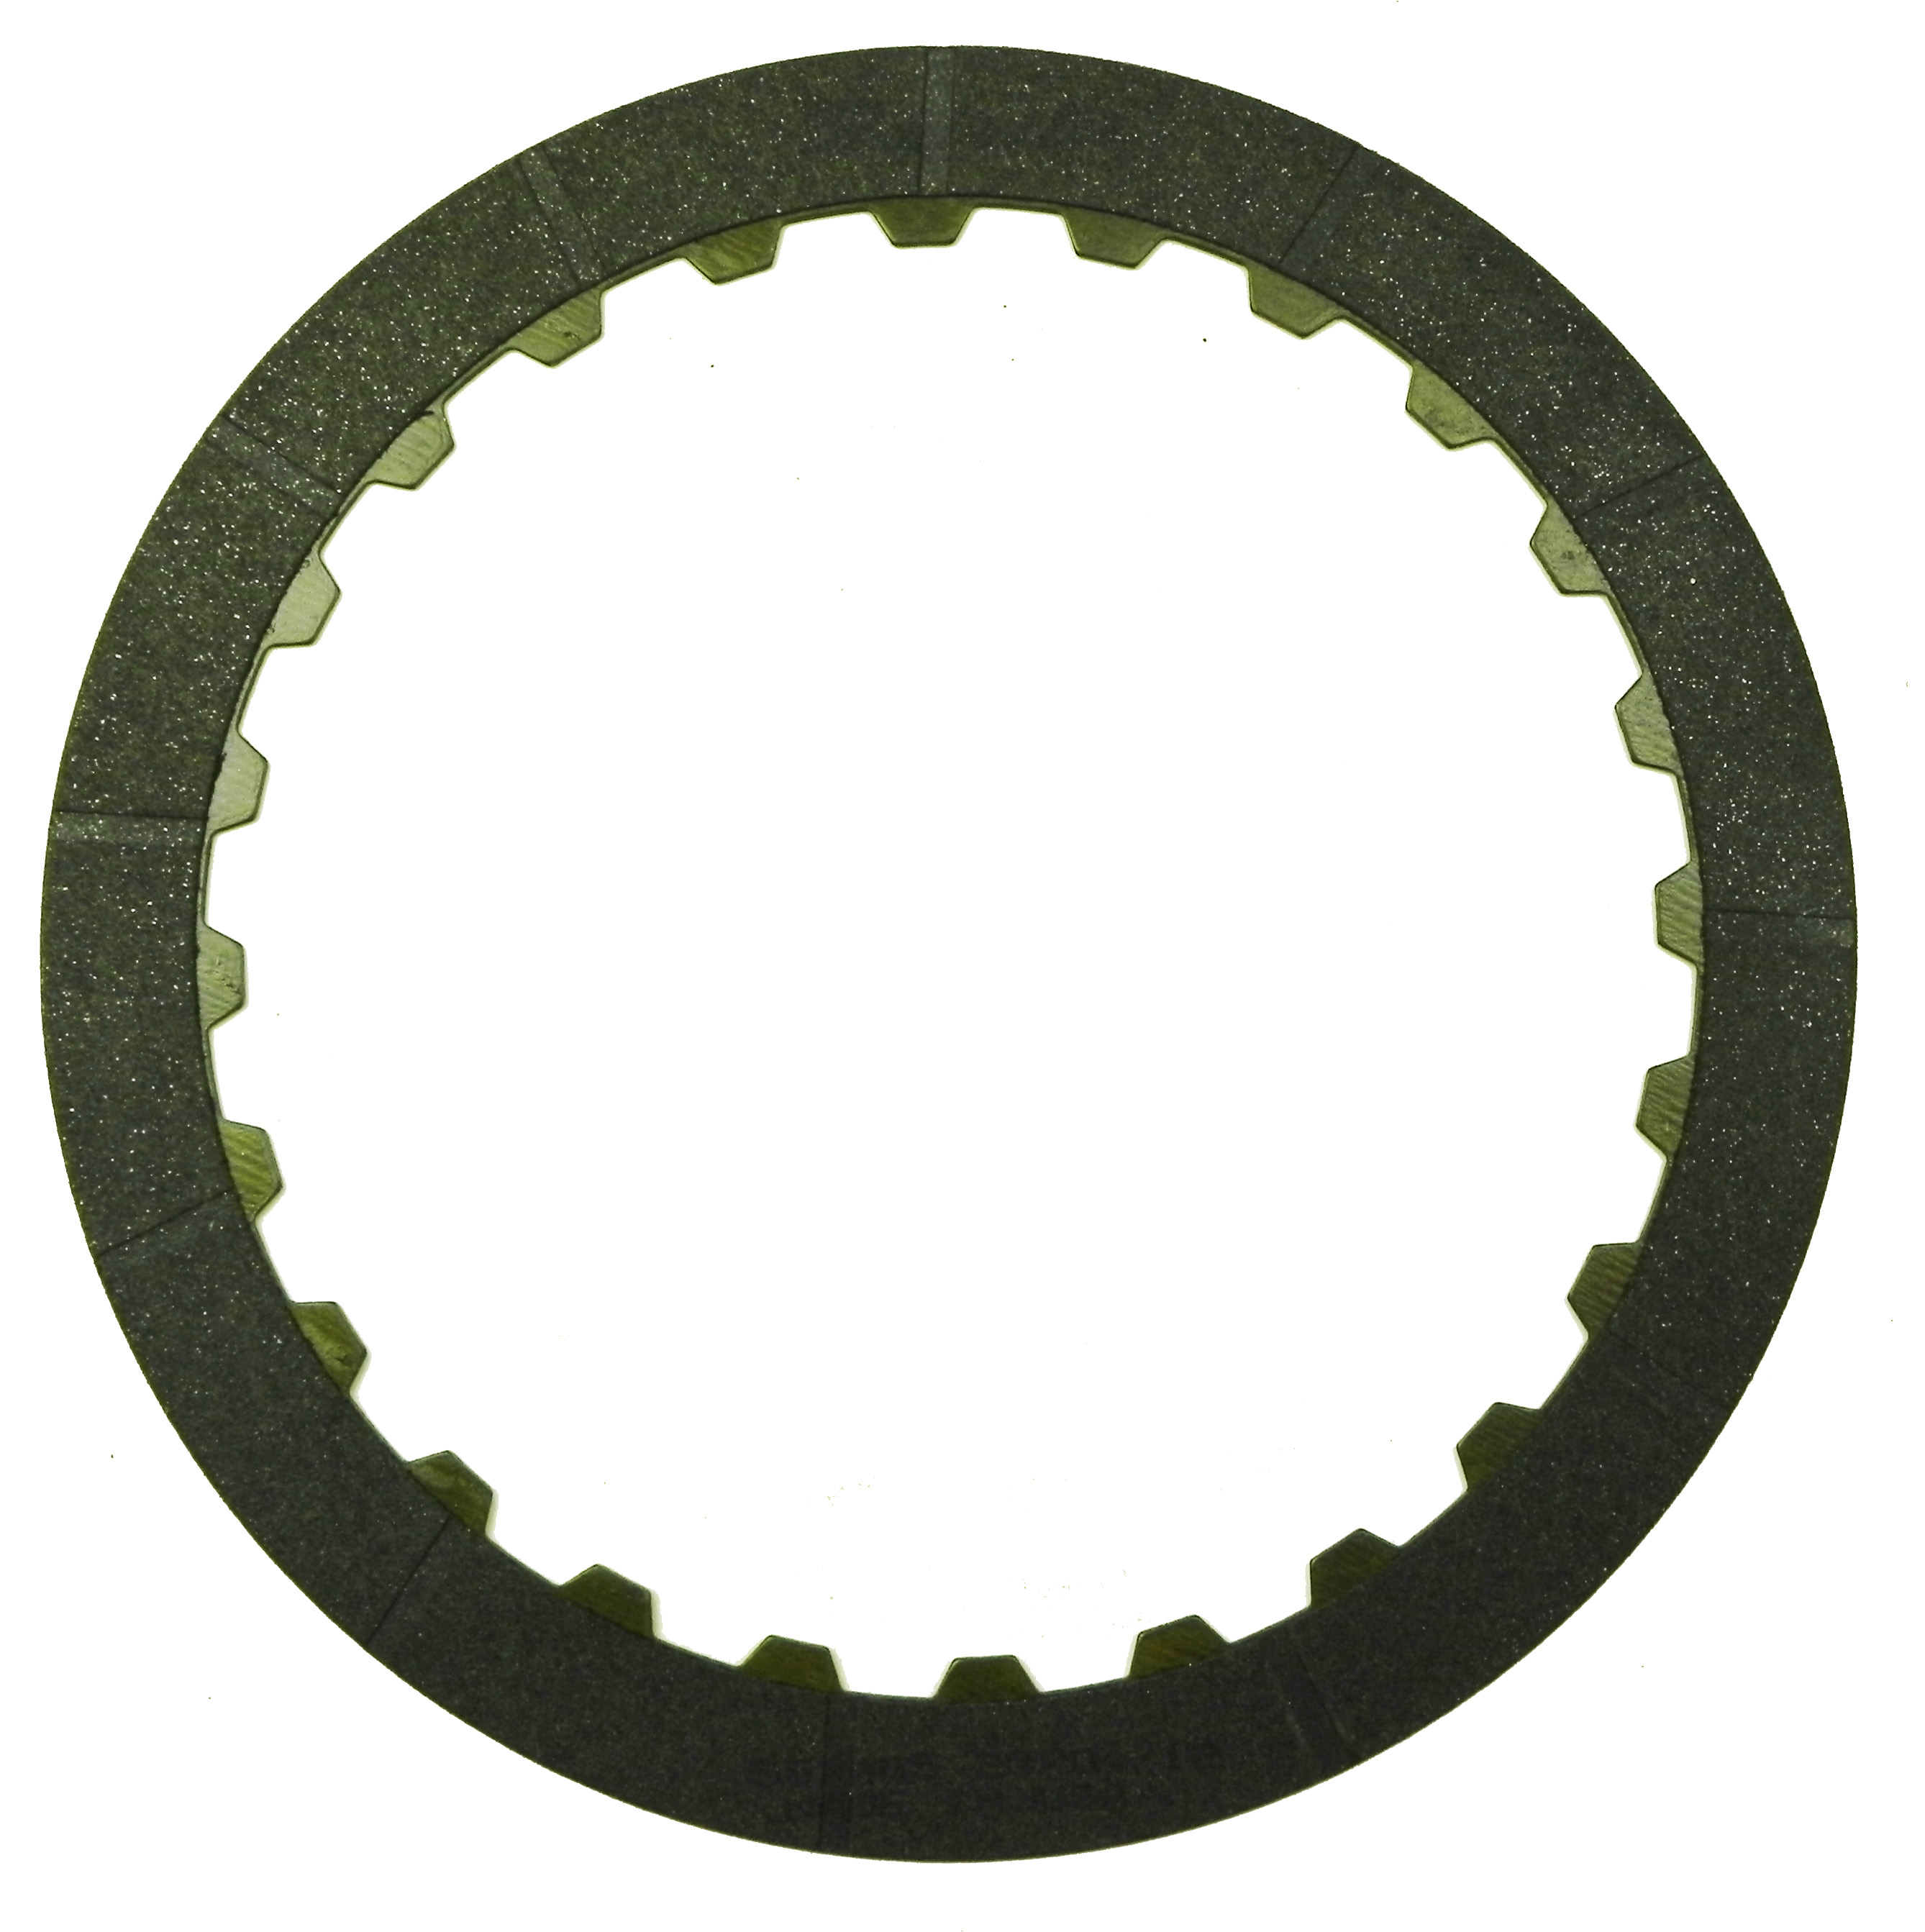 R558465 | 1999-ON Friction Clutch Plate High Energy 2nd, Single Sided, ID Spline, BMW X-3, X-5 Only High Energy